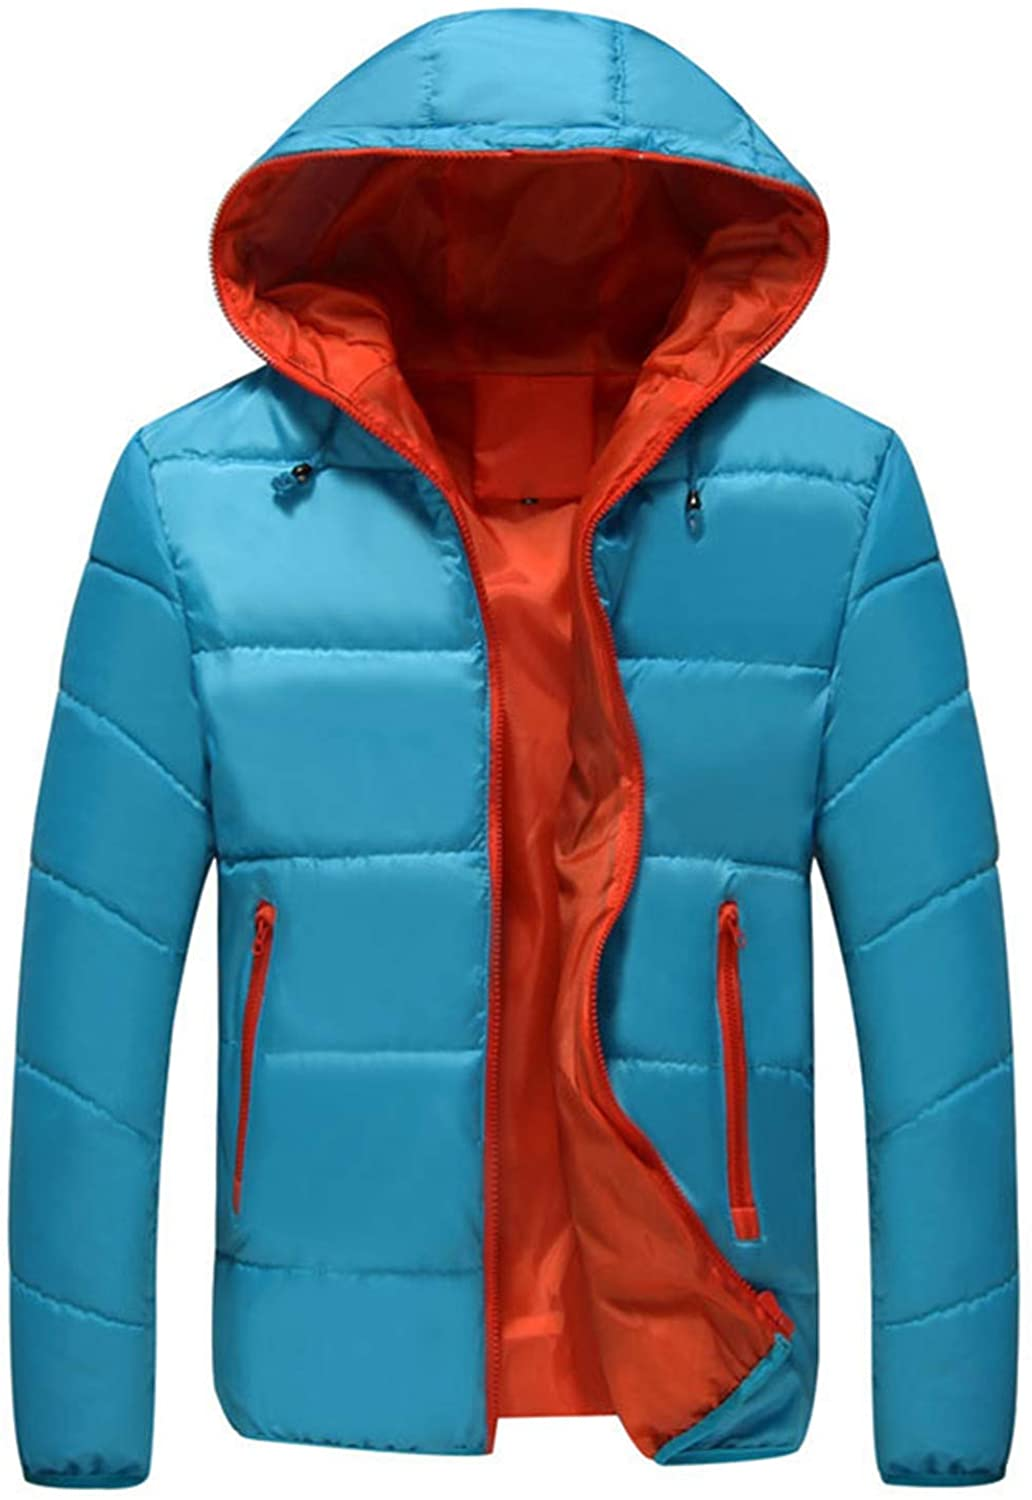 Soluo Men's Hooded Packable Down Jacket Lightweight Quilted Puffer Insulated Winter Coat Outerwear